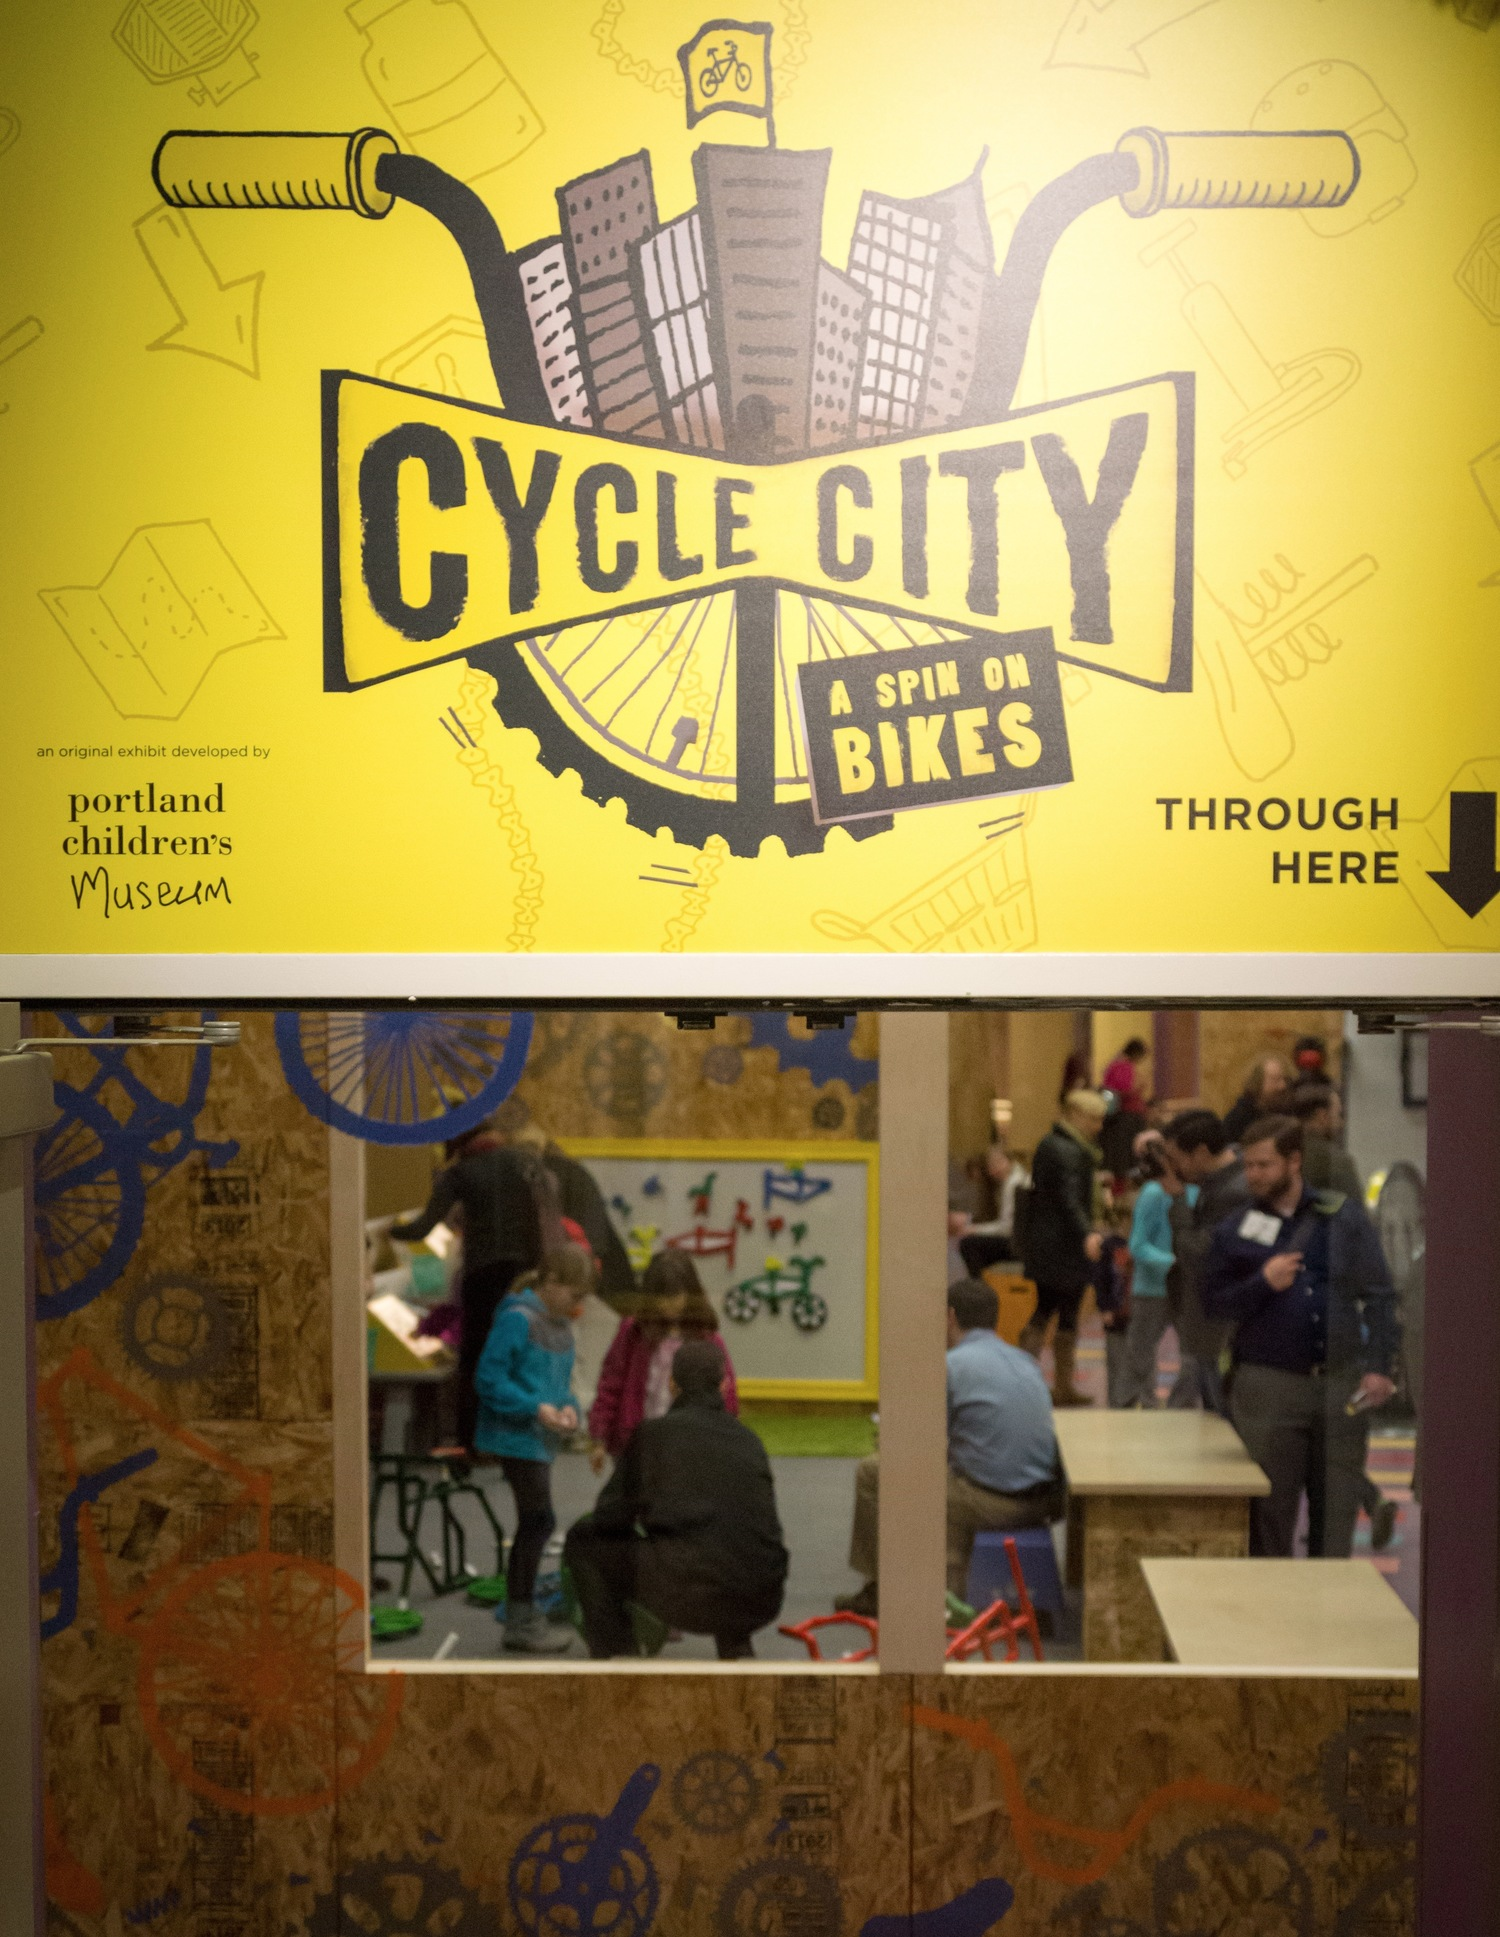 Cycle City: A Spin on Bikes — Phil Markel